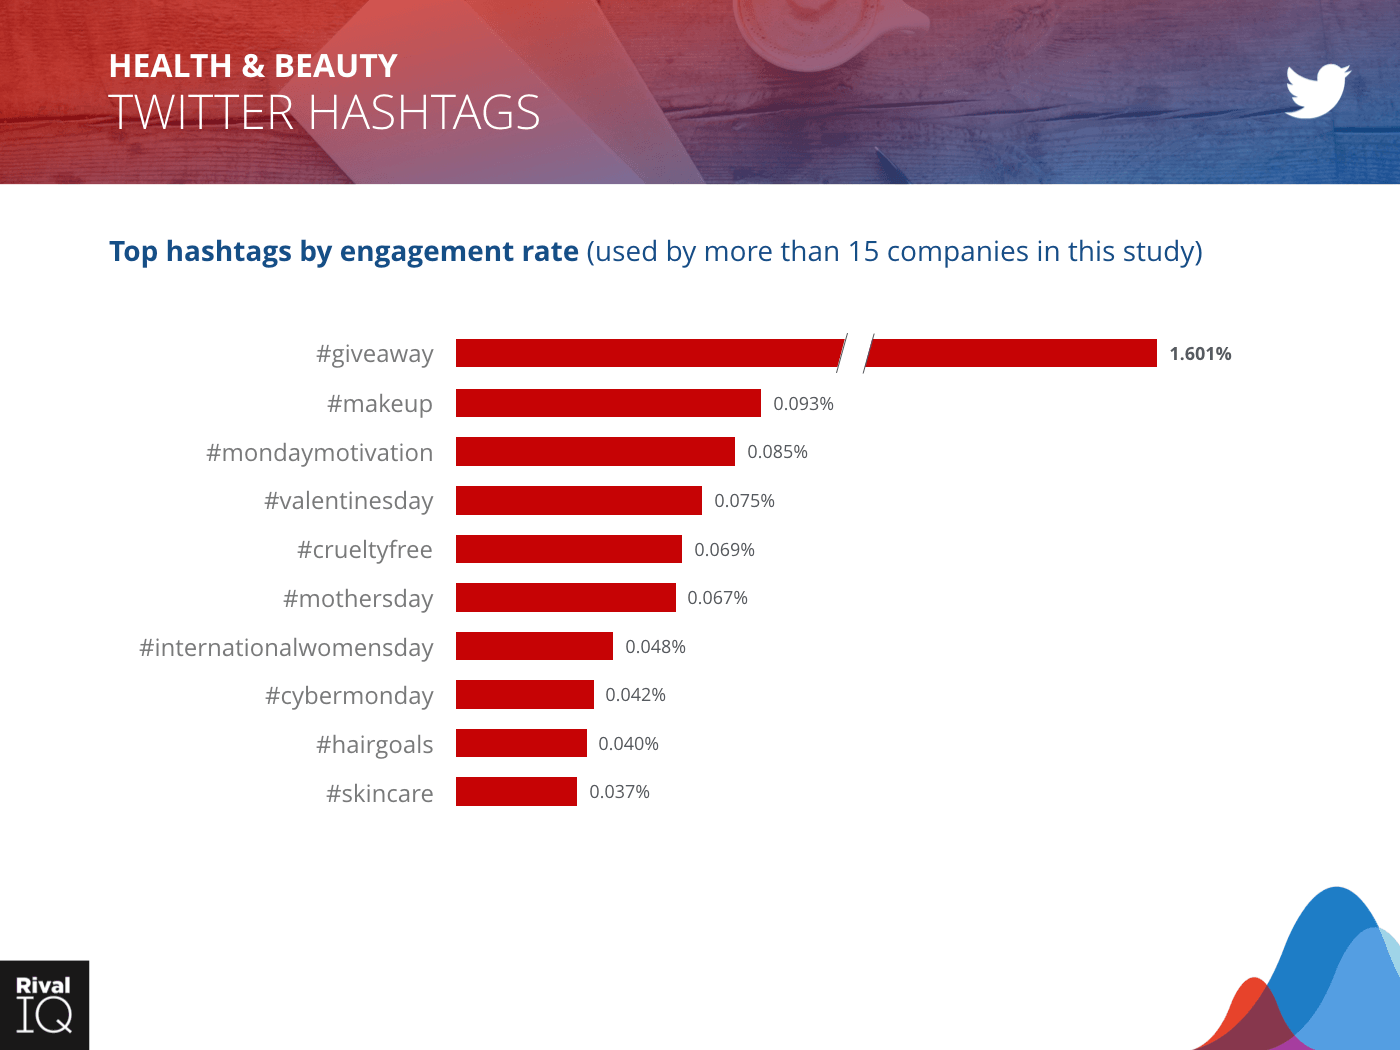 Health & Beauty Industry: bar graph, hashtags by engagement rate on Twitter